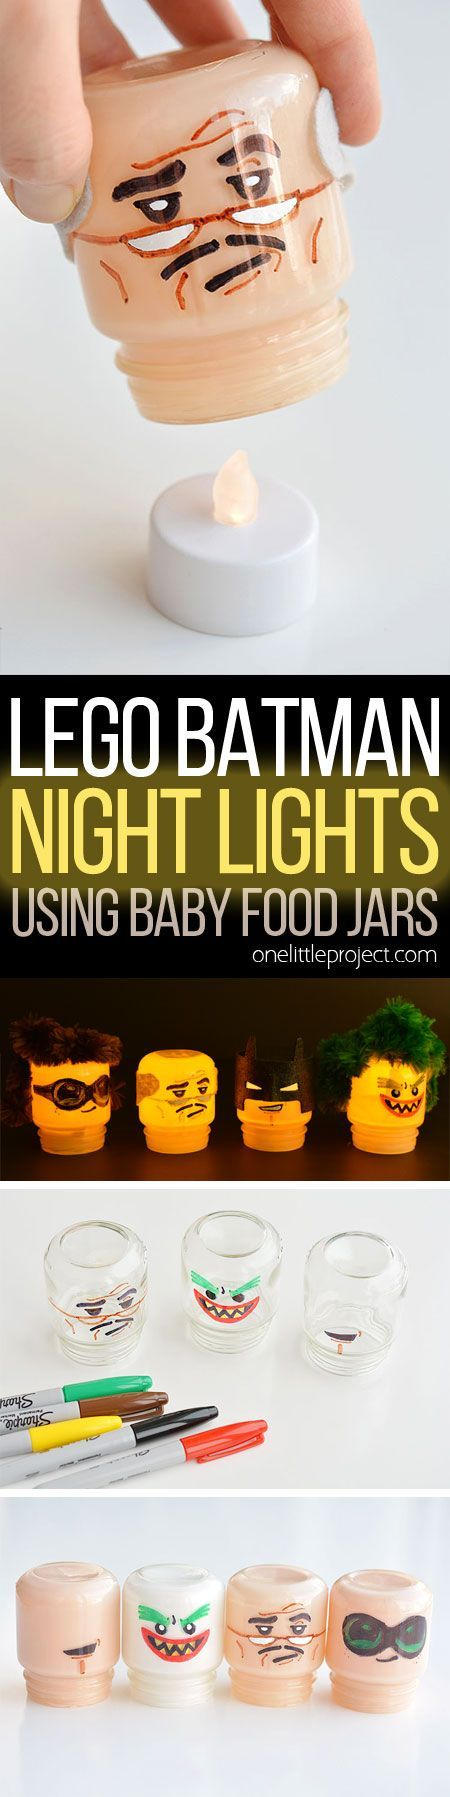 Baby food jars are the exact same shape as LEGO heads!!! Just draw on the faces and paint the jars! These Lego Batman night lights are SO CUTE! What a fun little project! #sponsored